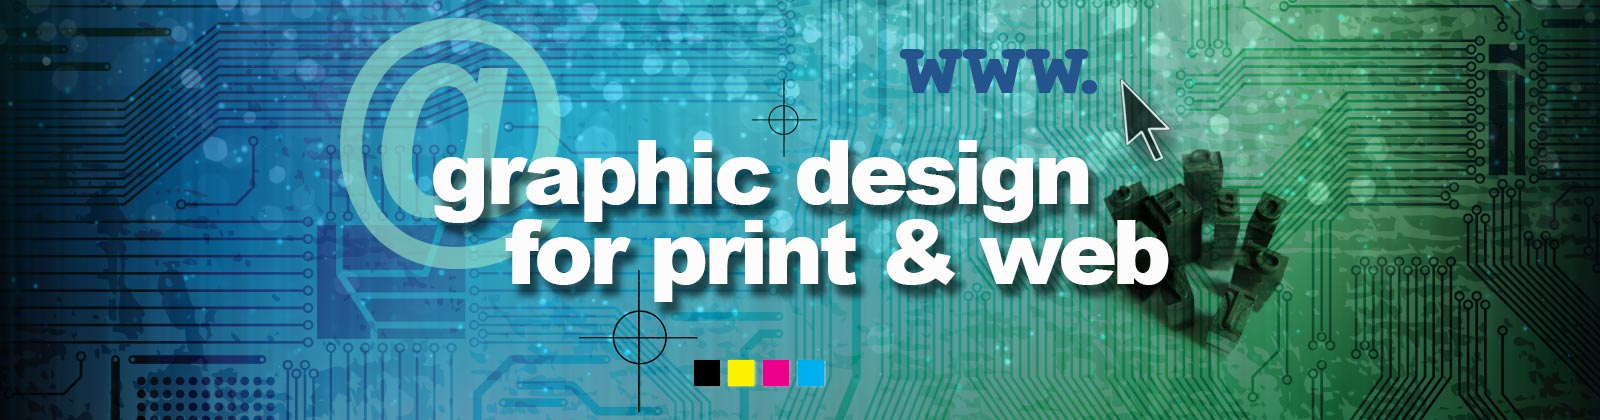 Graphic Design for Print and Web